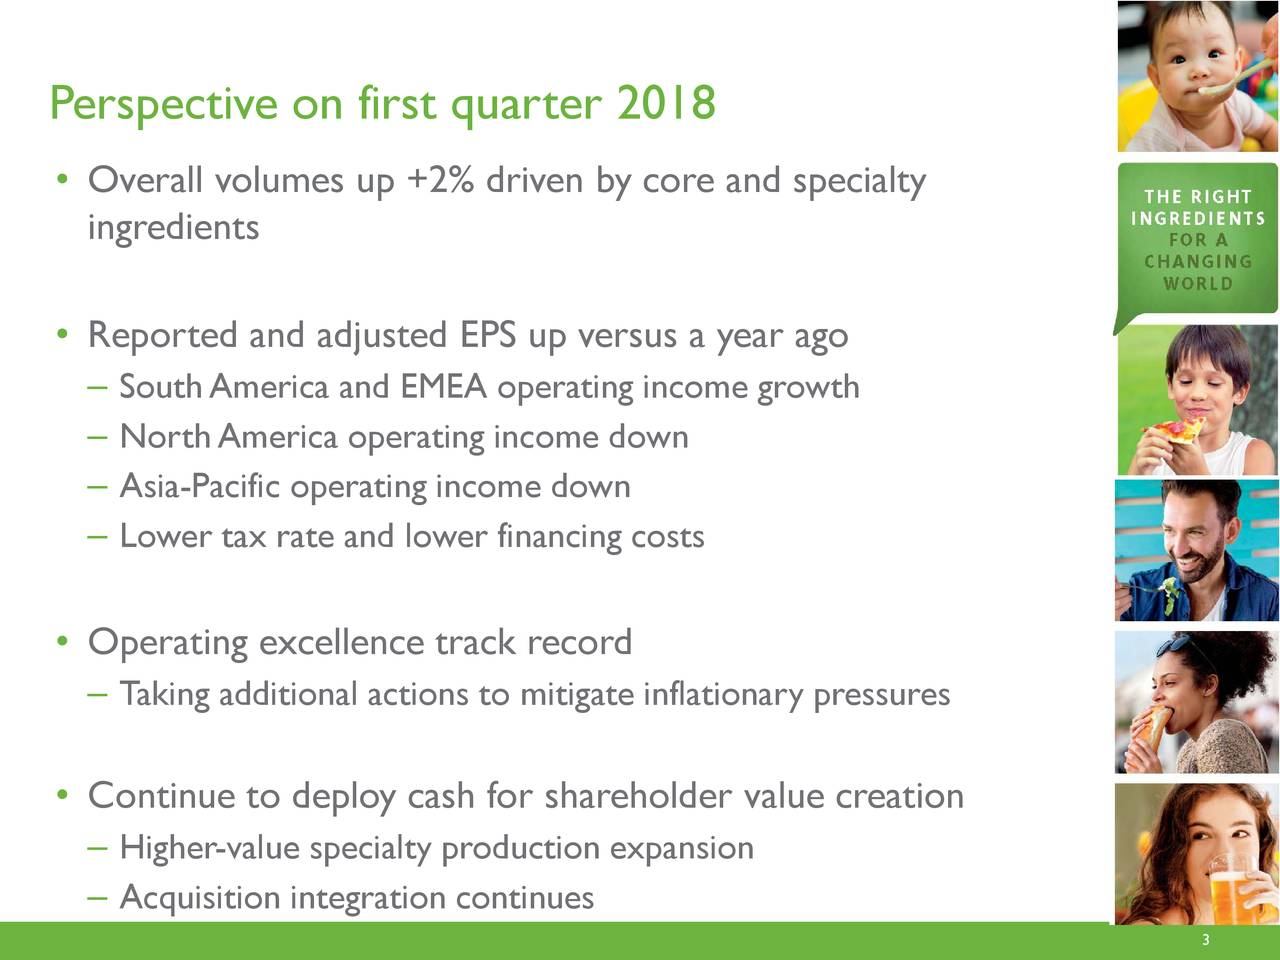 • Overall volumes up +2% driven by core and specialty ingredients • Reported and adjusted EPS up versus a year ago – SouthAmerica and EMEA operating income growth – North America operating incomedown – Asia-Pacific operating income down – Lowertax rate and lowerfinancing costs • Operating excellence track record – Taking additional actions to mitigate inflationary pressures • Continue to deploy cash for shareholder value creation – Higher-value specialty production expansion – Acquisition integration continues